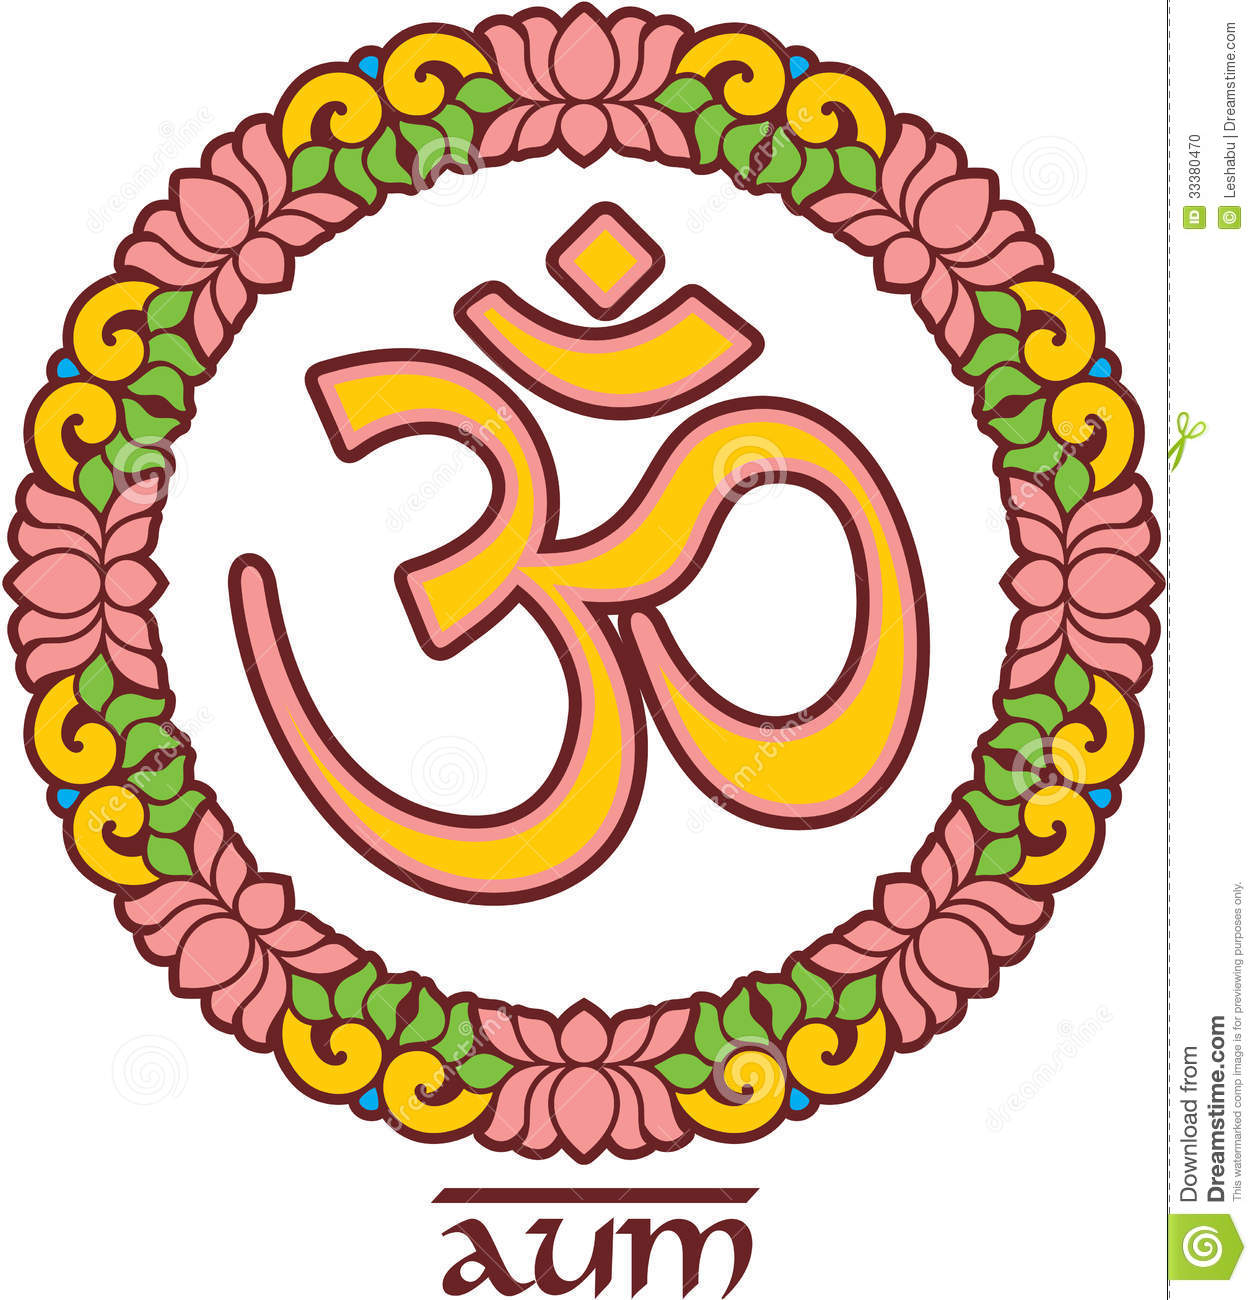 Om - Aum - Symbol In Lotus Frame Stock Illustration ...